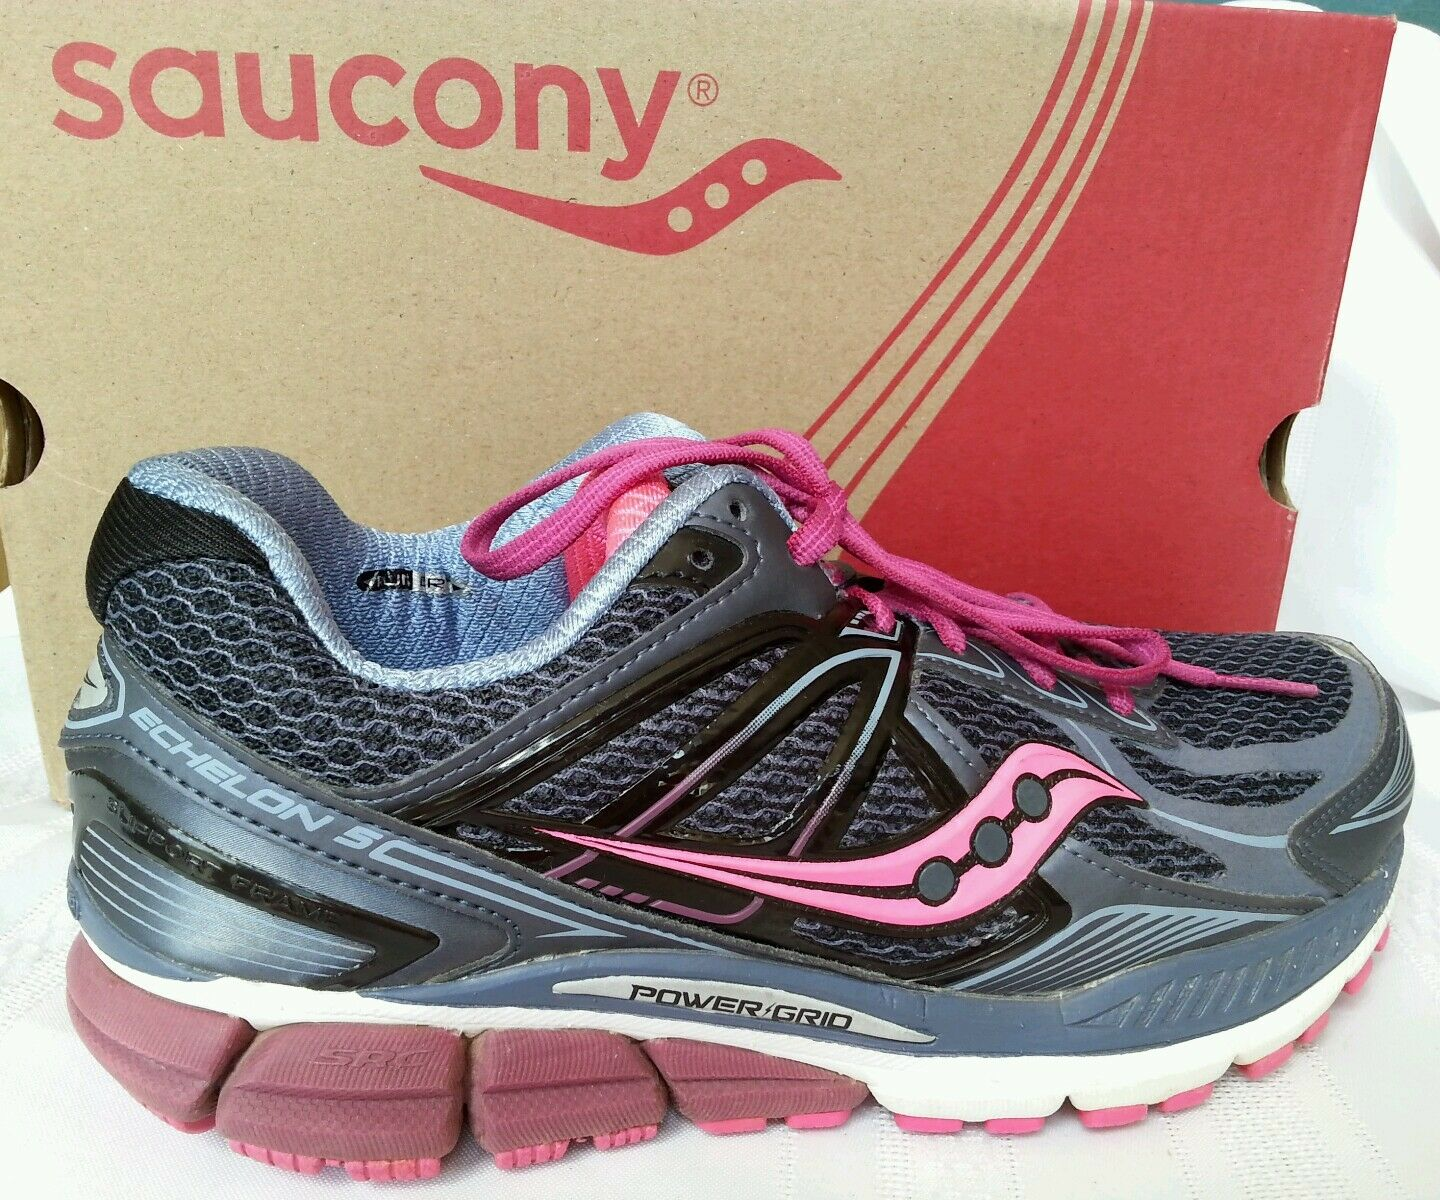 Saucony Women'S Echelon 5 Running shoes Womens And Running shoes size 7.5